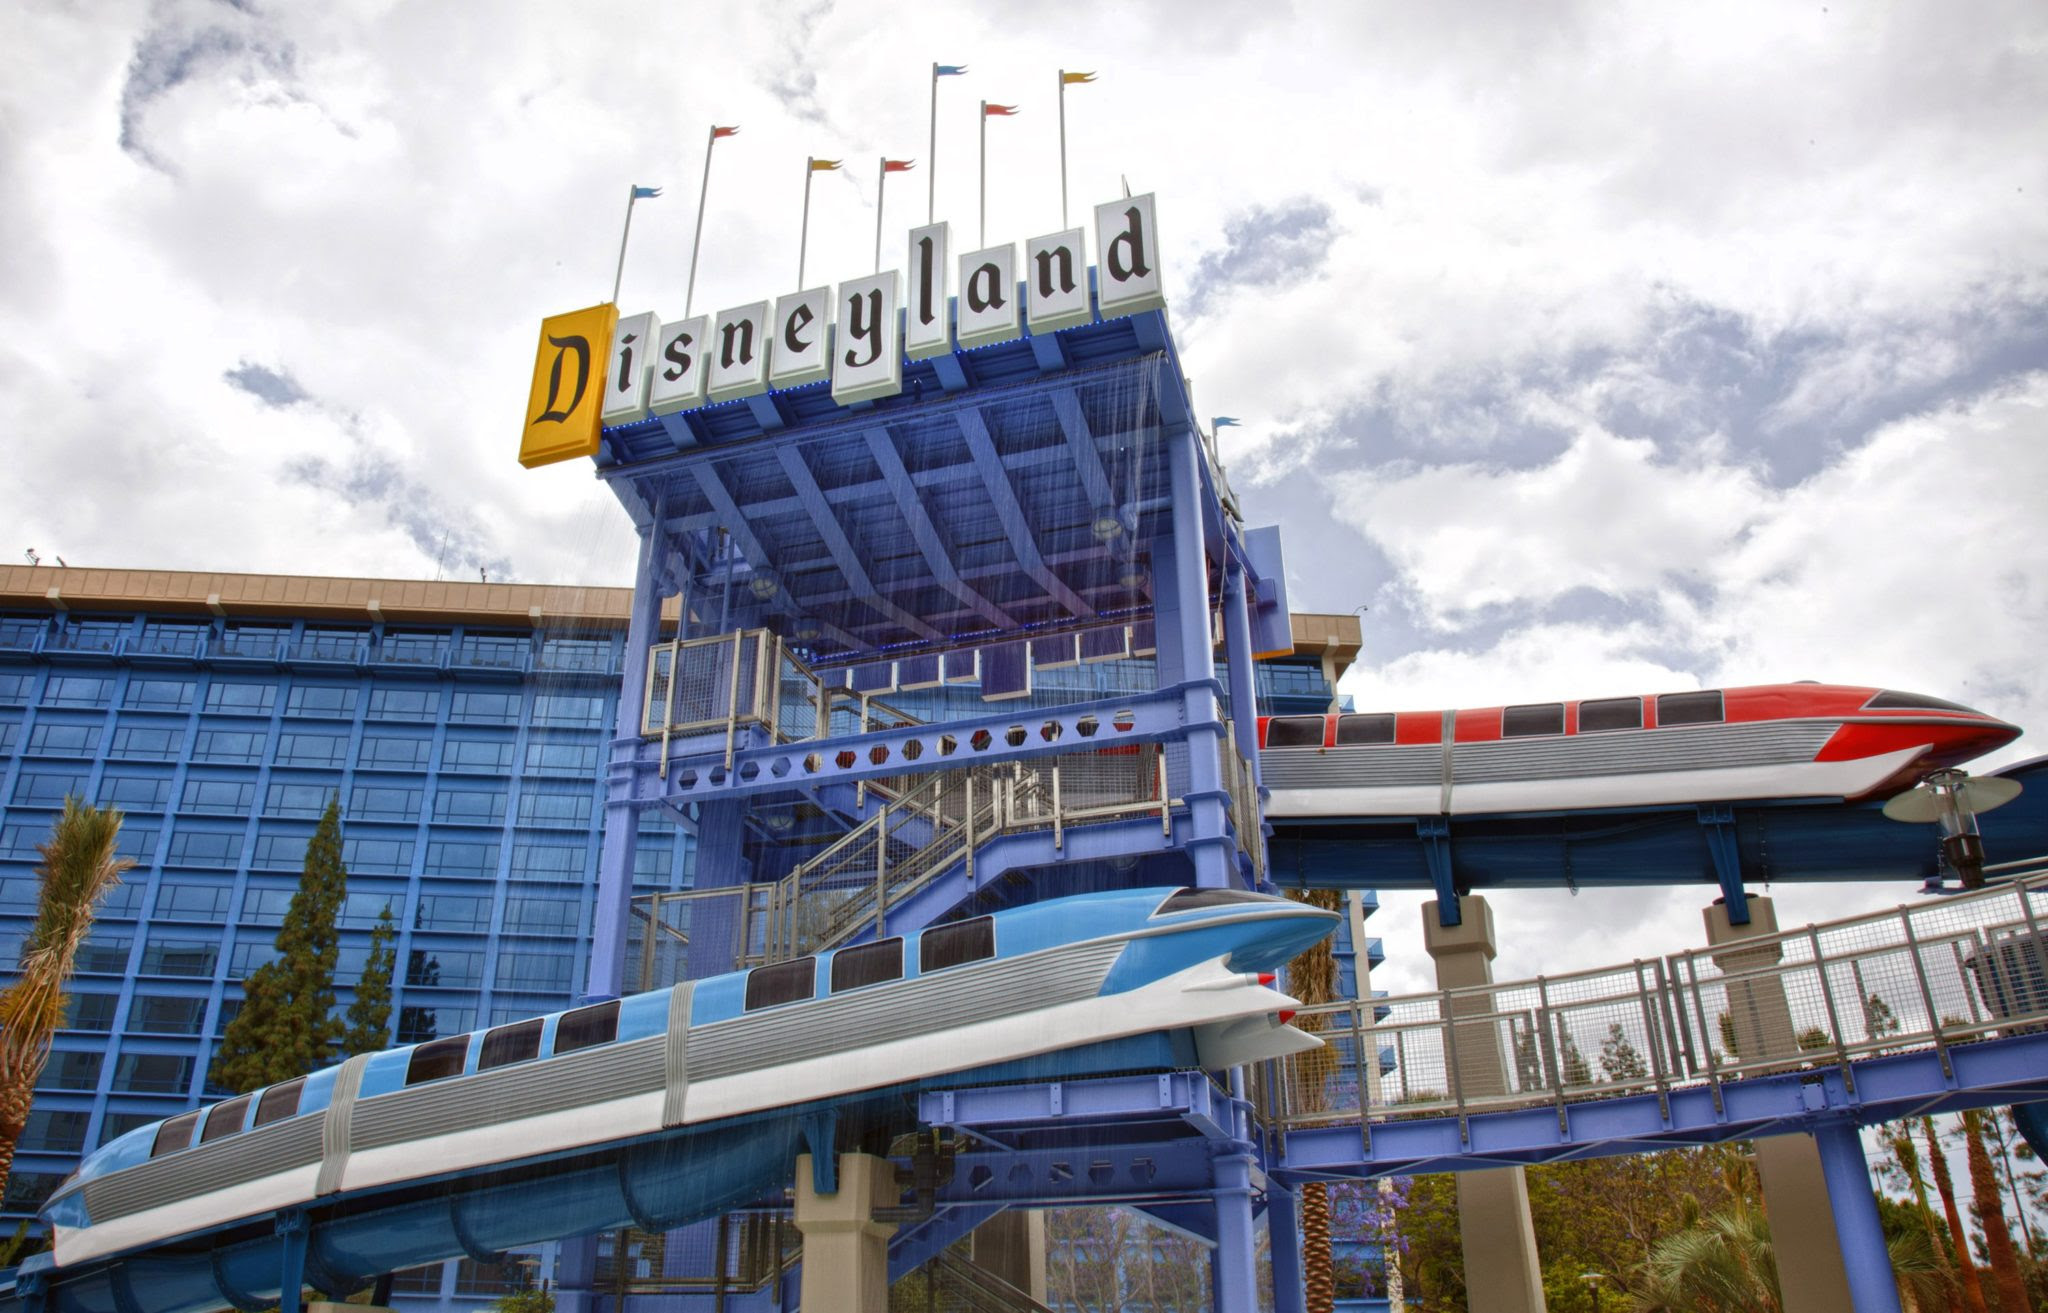 Disneyland Packages Best Way to Book Your Disneyland